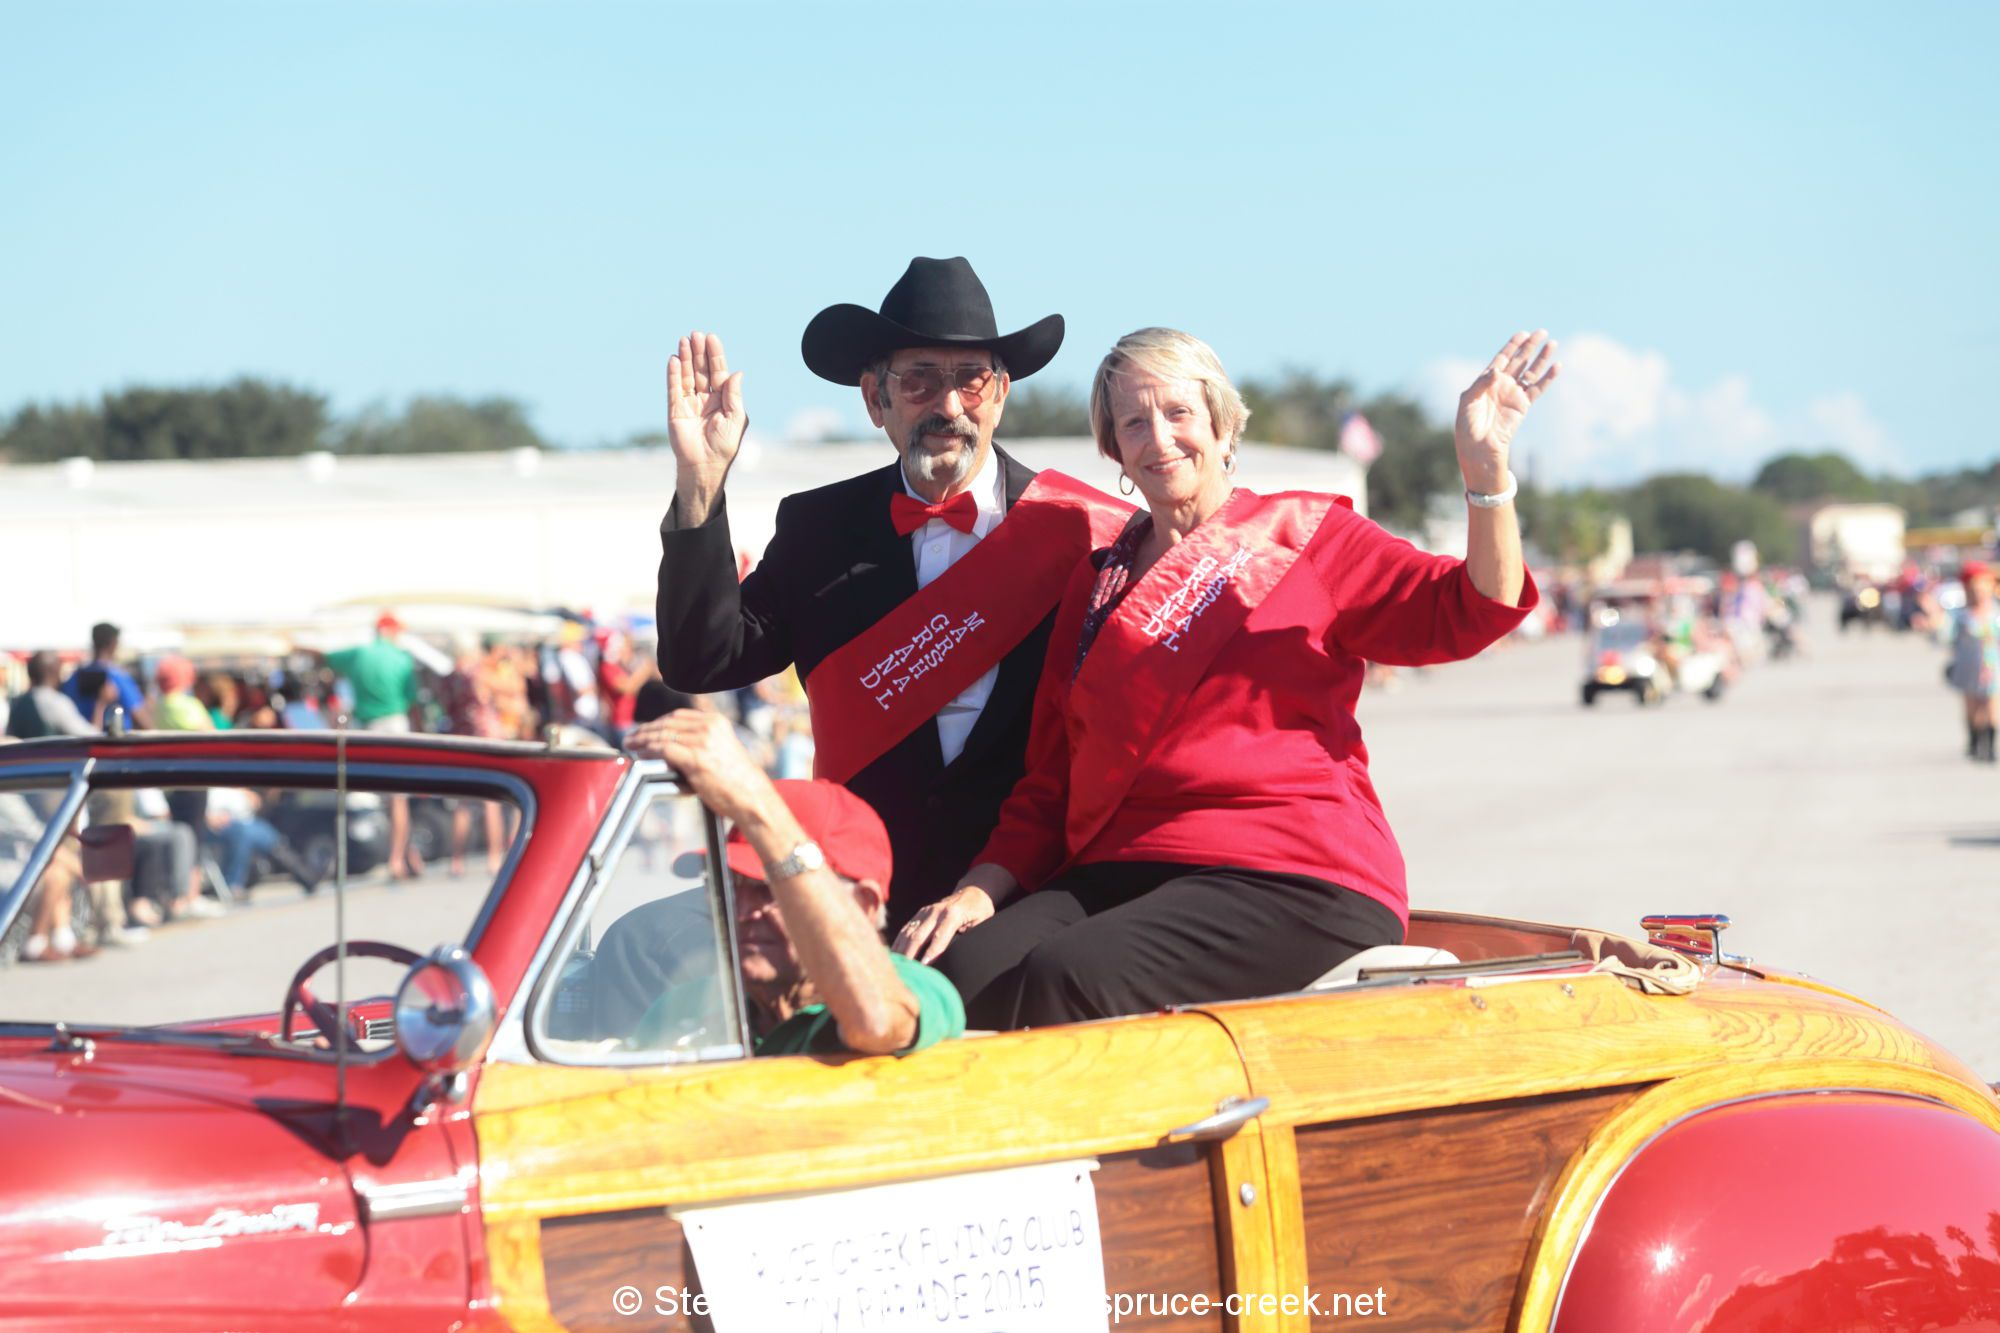 Spruce-Creek-Toyparade-2015- IMG_1460